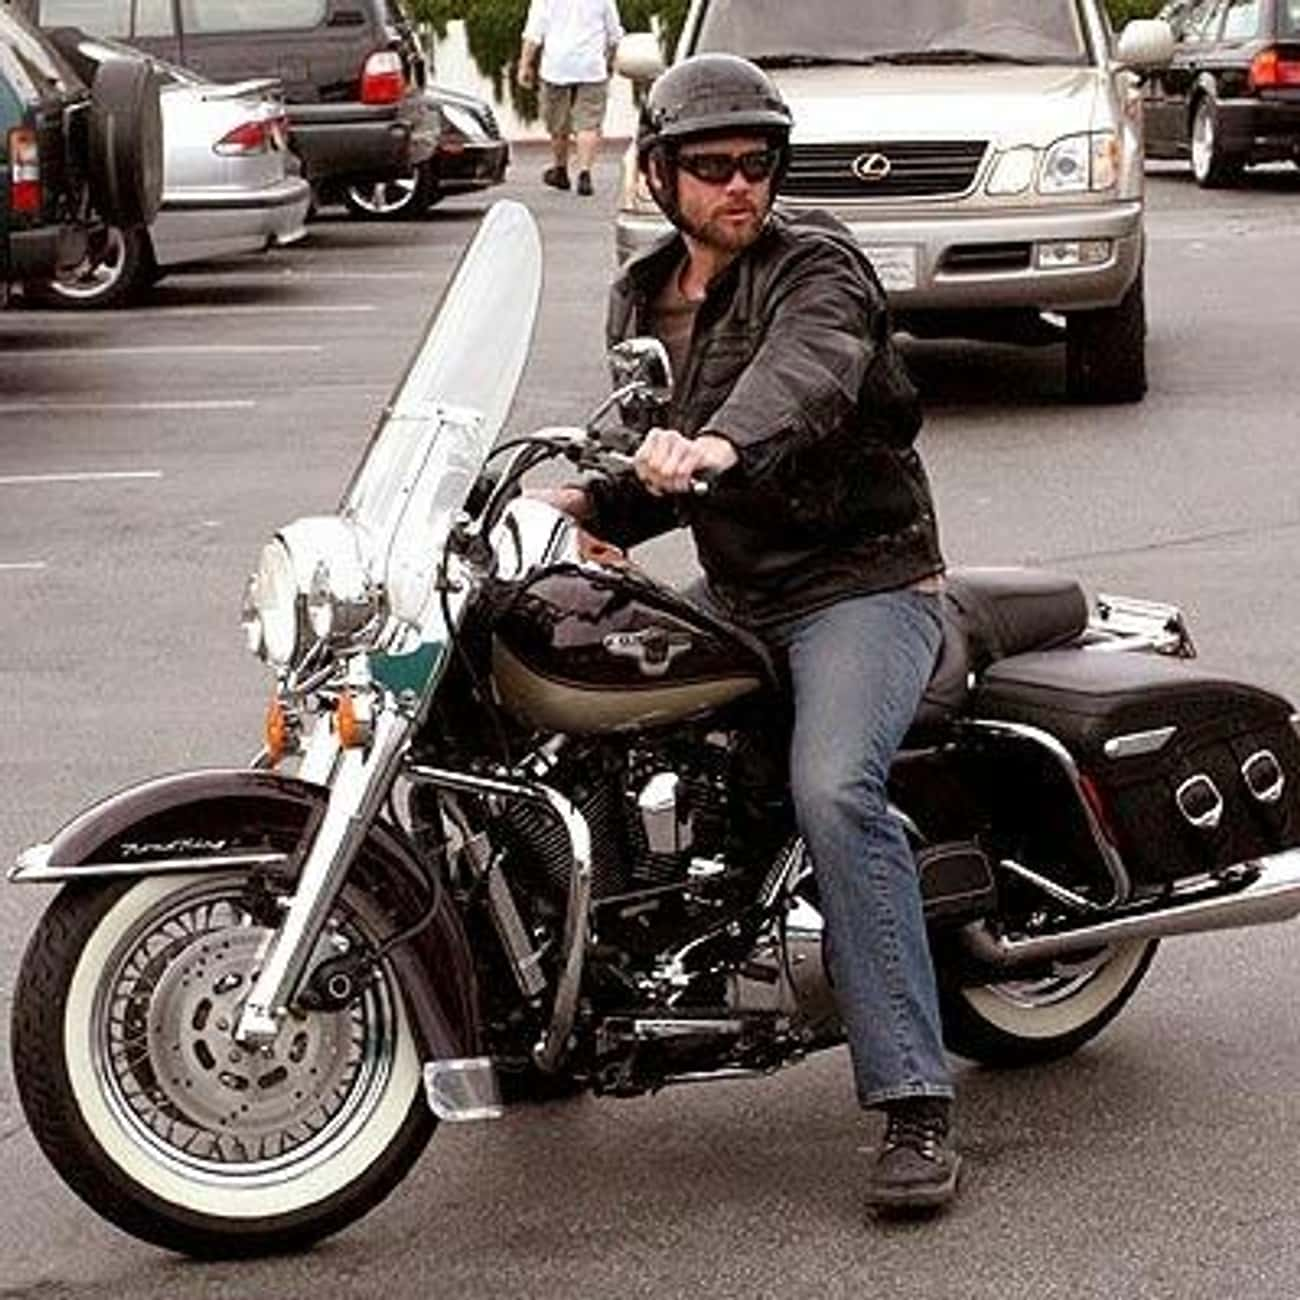 Jim Carrey is listed (or ranked) 3 on the list Actors Who Ride Motorcycles